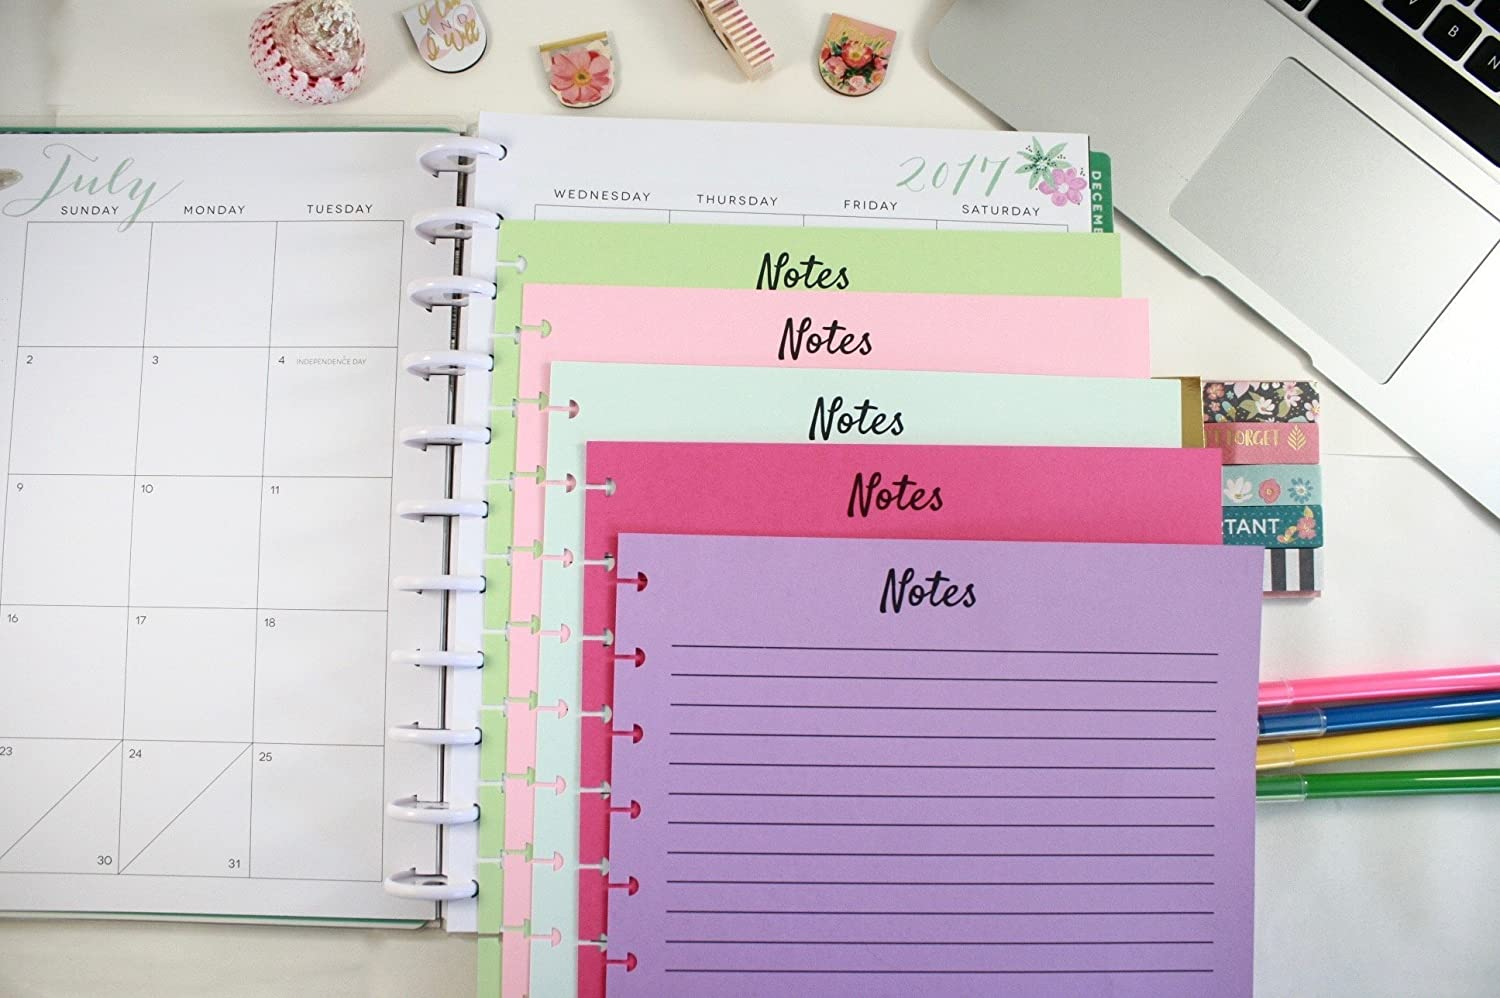 The Big Happy Planner Colored Refill Pages Soda Pop, Big Happy Planner Notes Refills, Pre-punched Happy Planner Inserts, Pre-punched Notes Refills